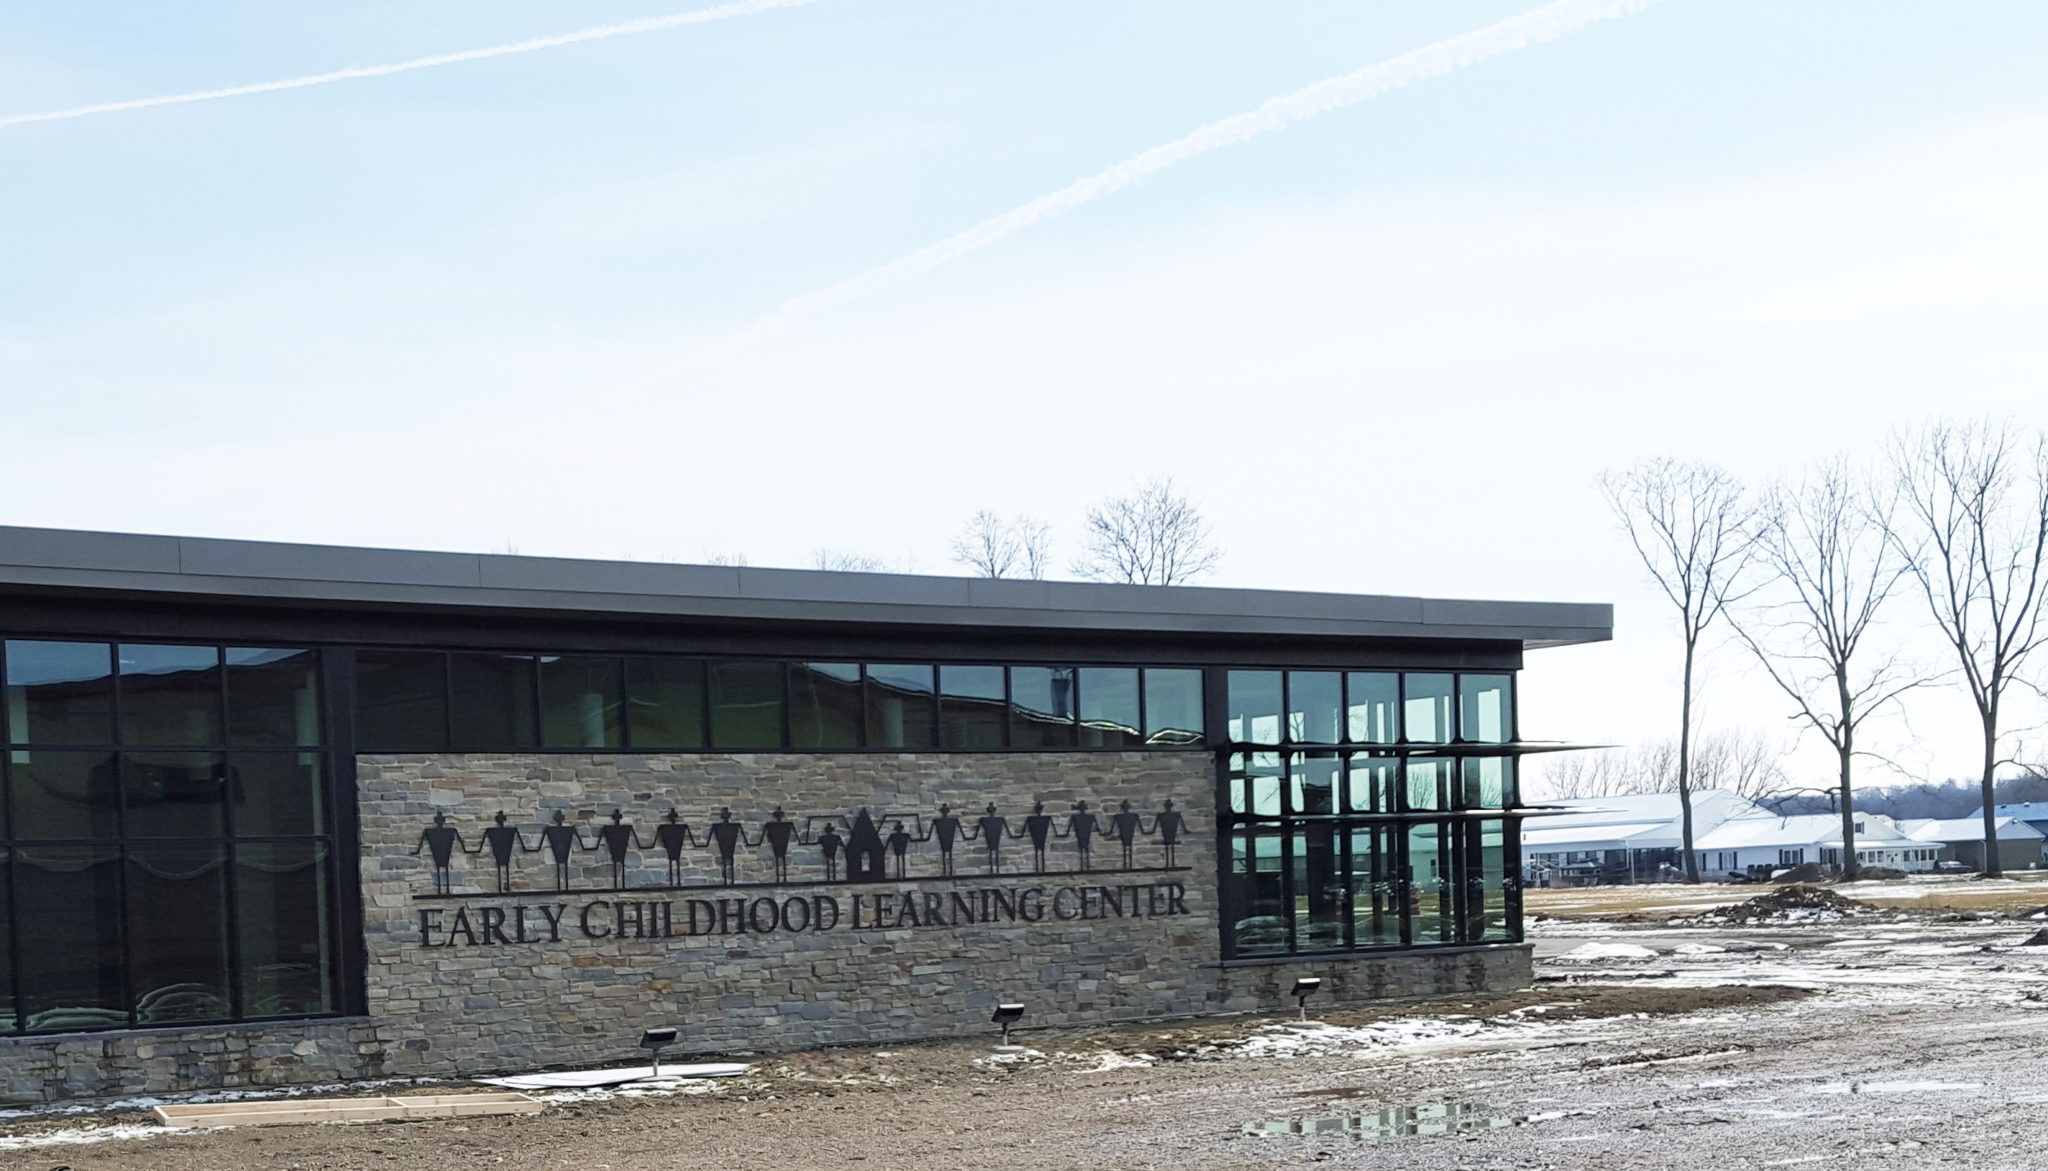 Early Childhood Learning Center